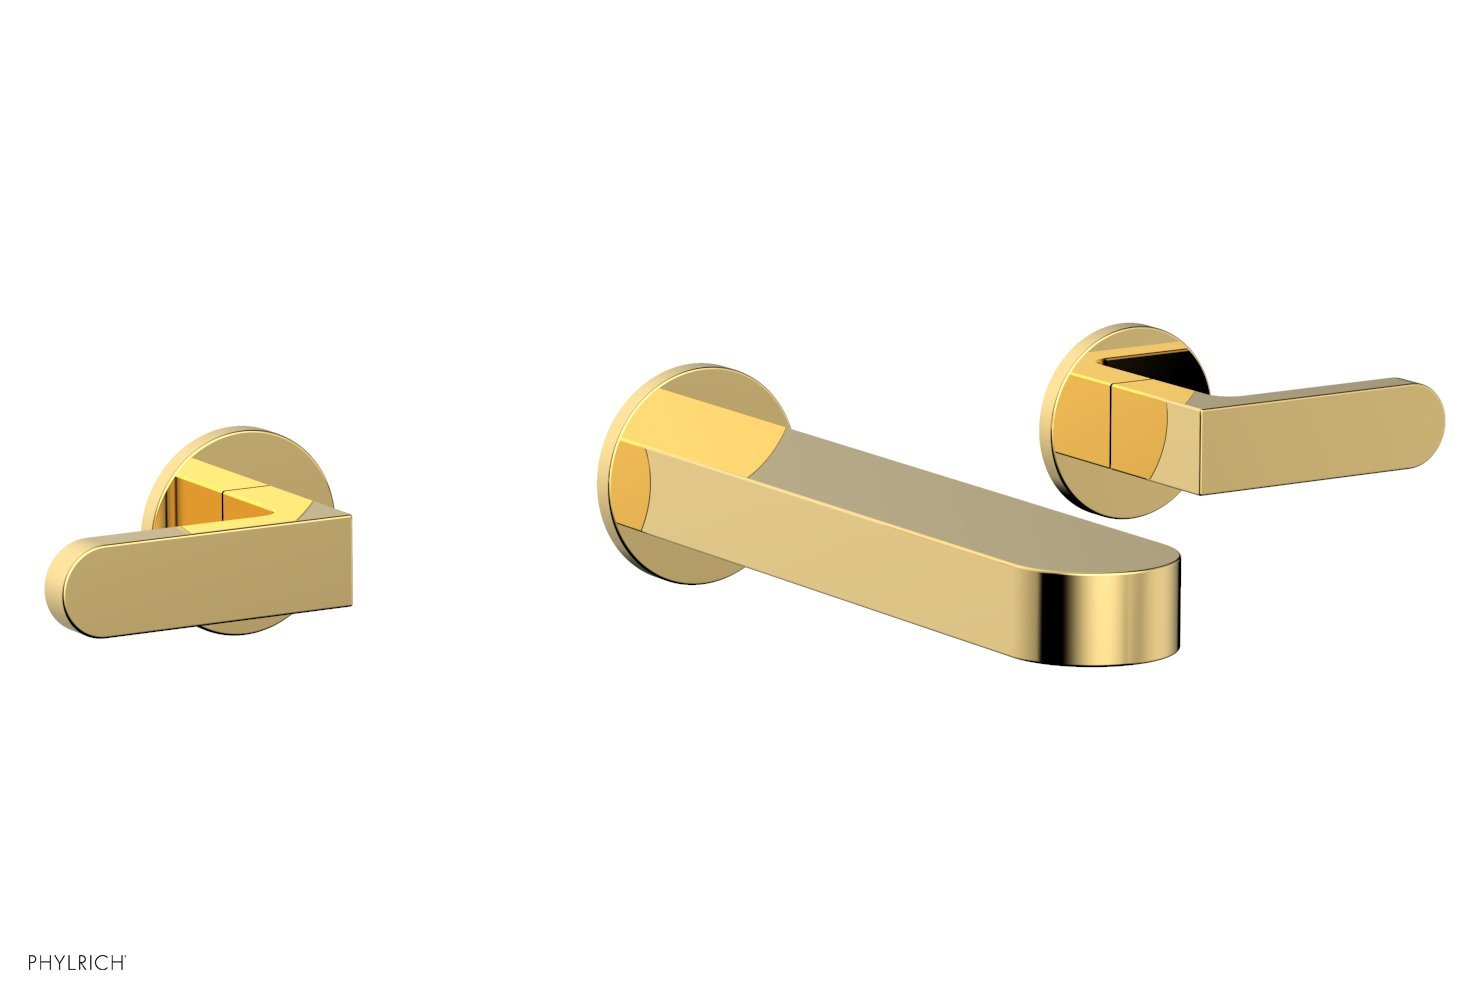 Phylrich 183-12-025 ROND Wall Lavatory Set - Lever Handles - Polished Gold